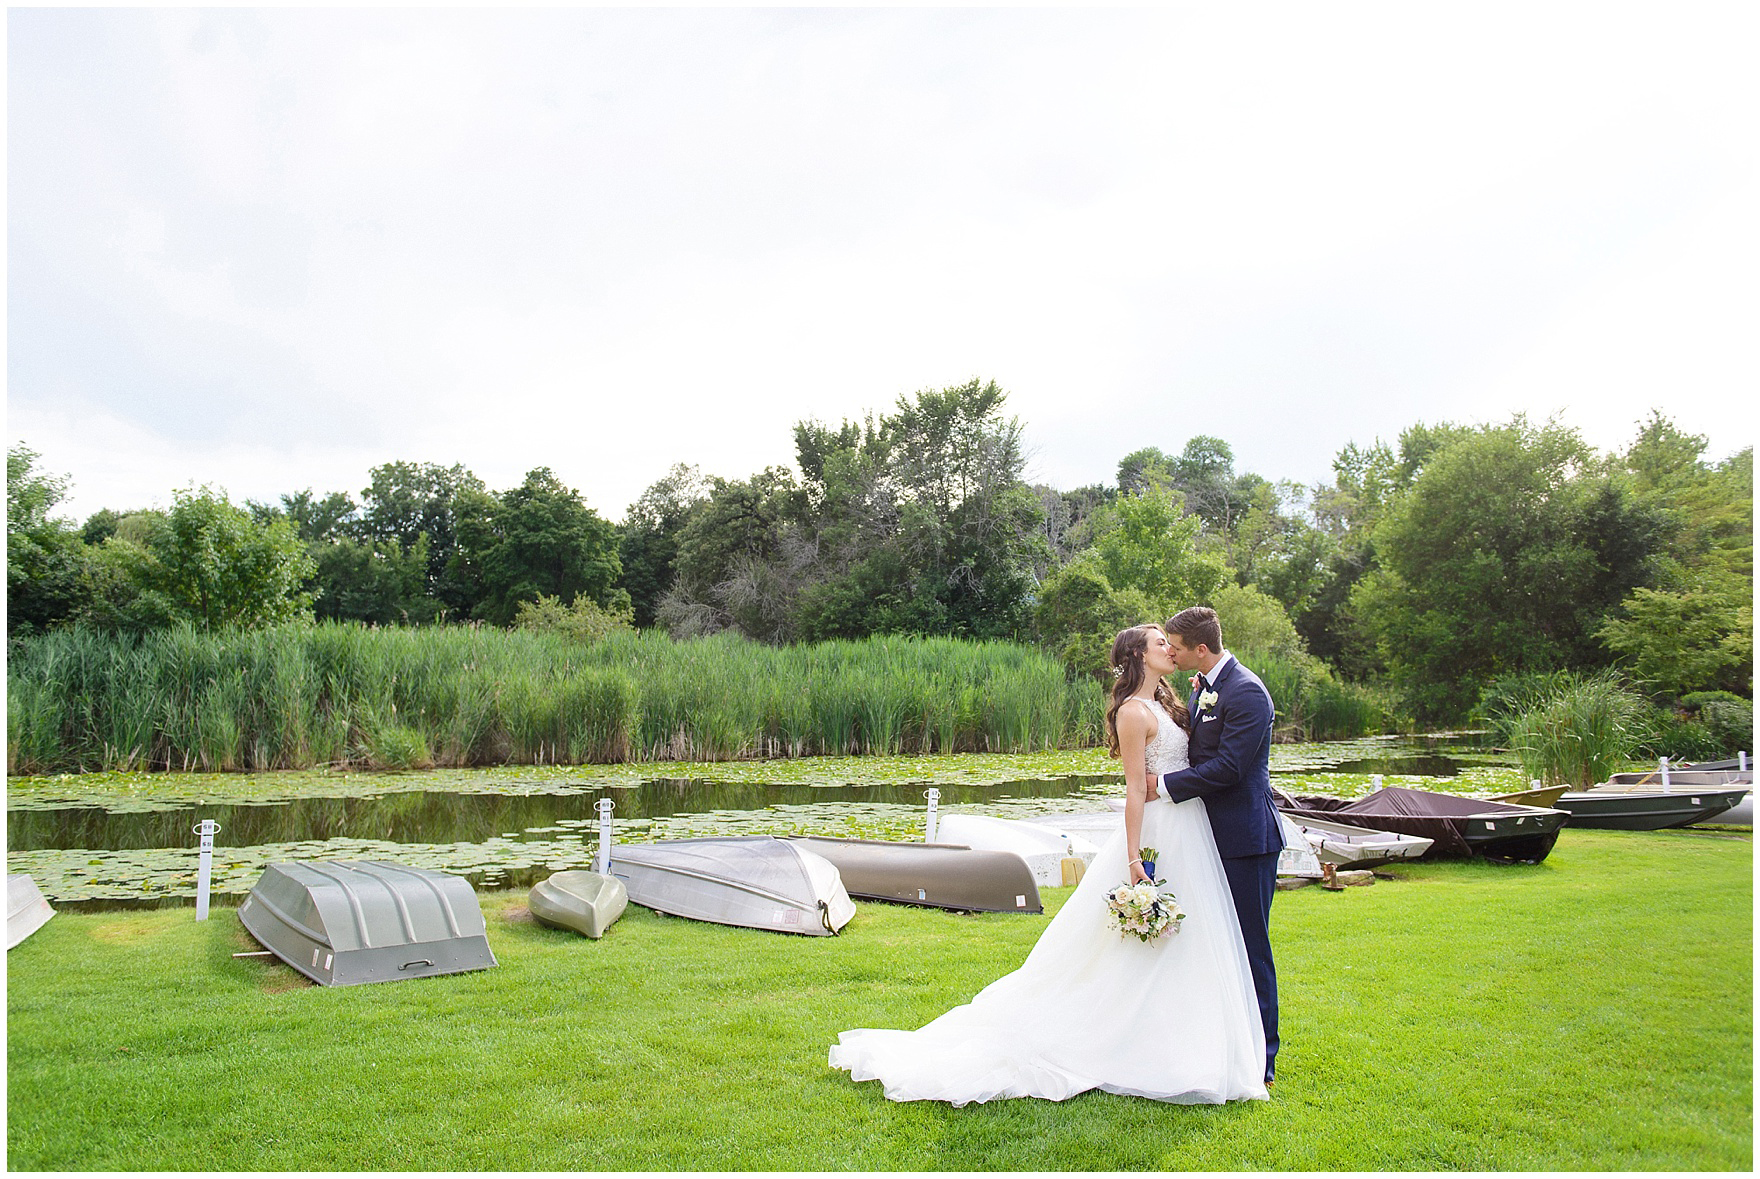 The bride and groom pose near the beach at Honey Lake during their Biltmore Country Club Barrington wedding.